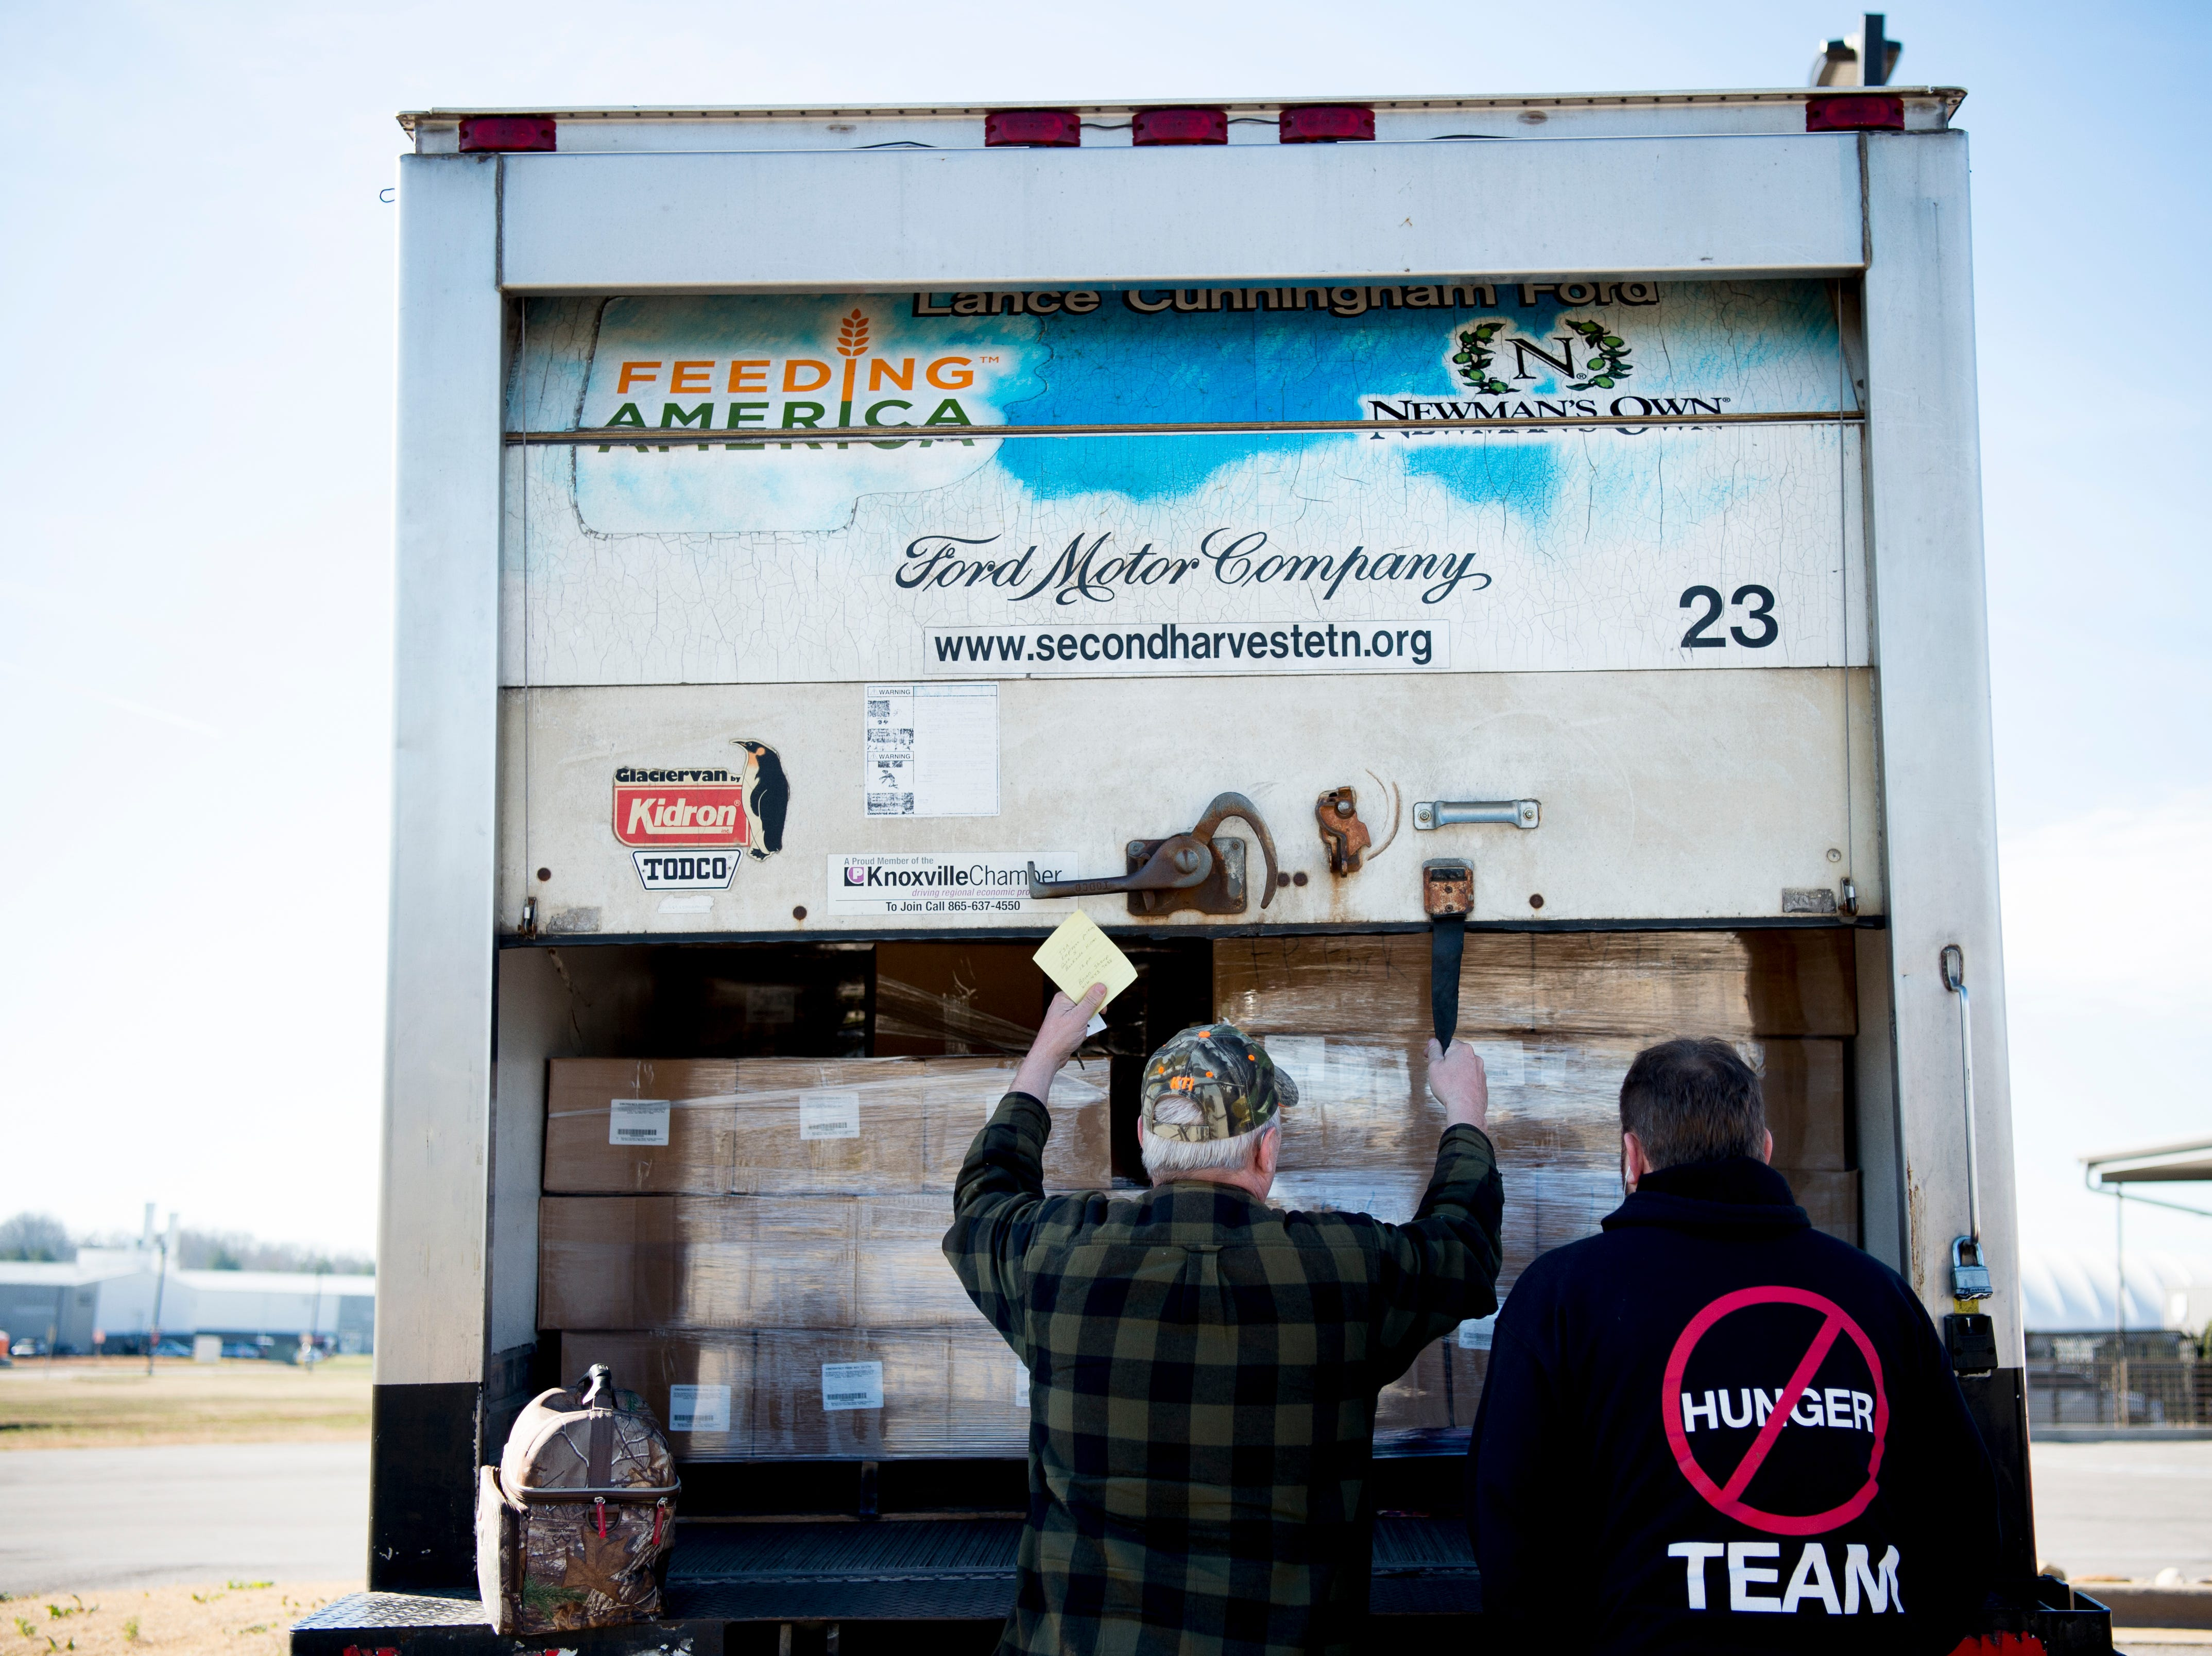 The Second Harvest Food Bank truck arrives at McGhee Tyson Airport in Alcoa, Tennessee on Friday, January 11, 2019. Filling an 'unprecedented request,' Second Harvest Food Bank sent emergency food supplies to TSA workers.